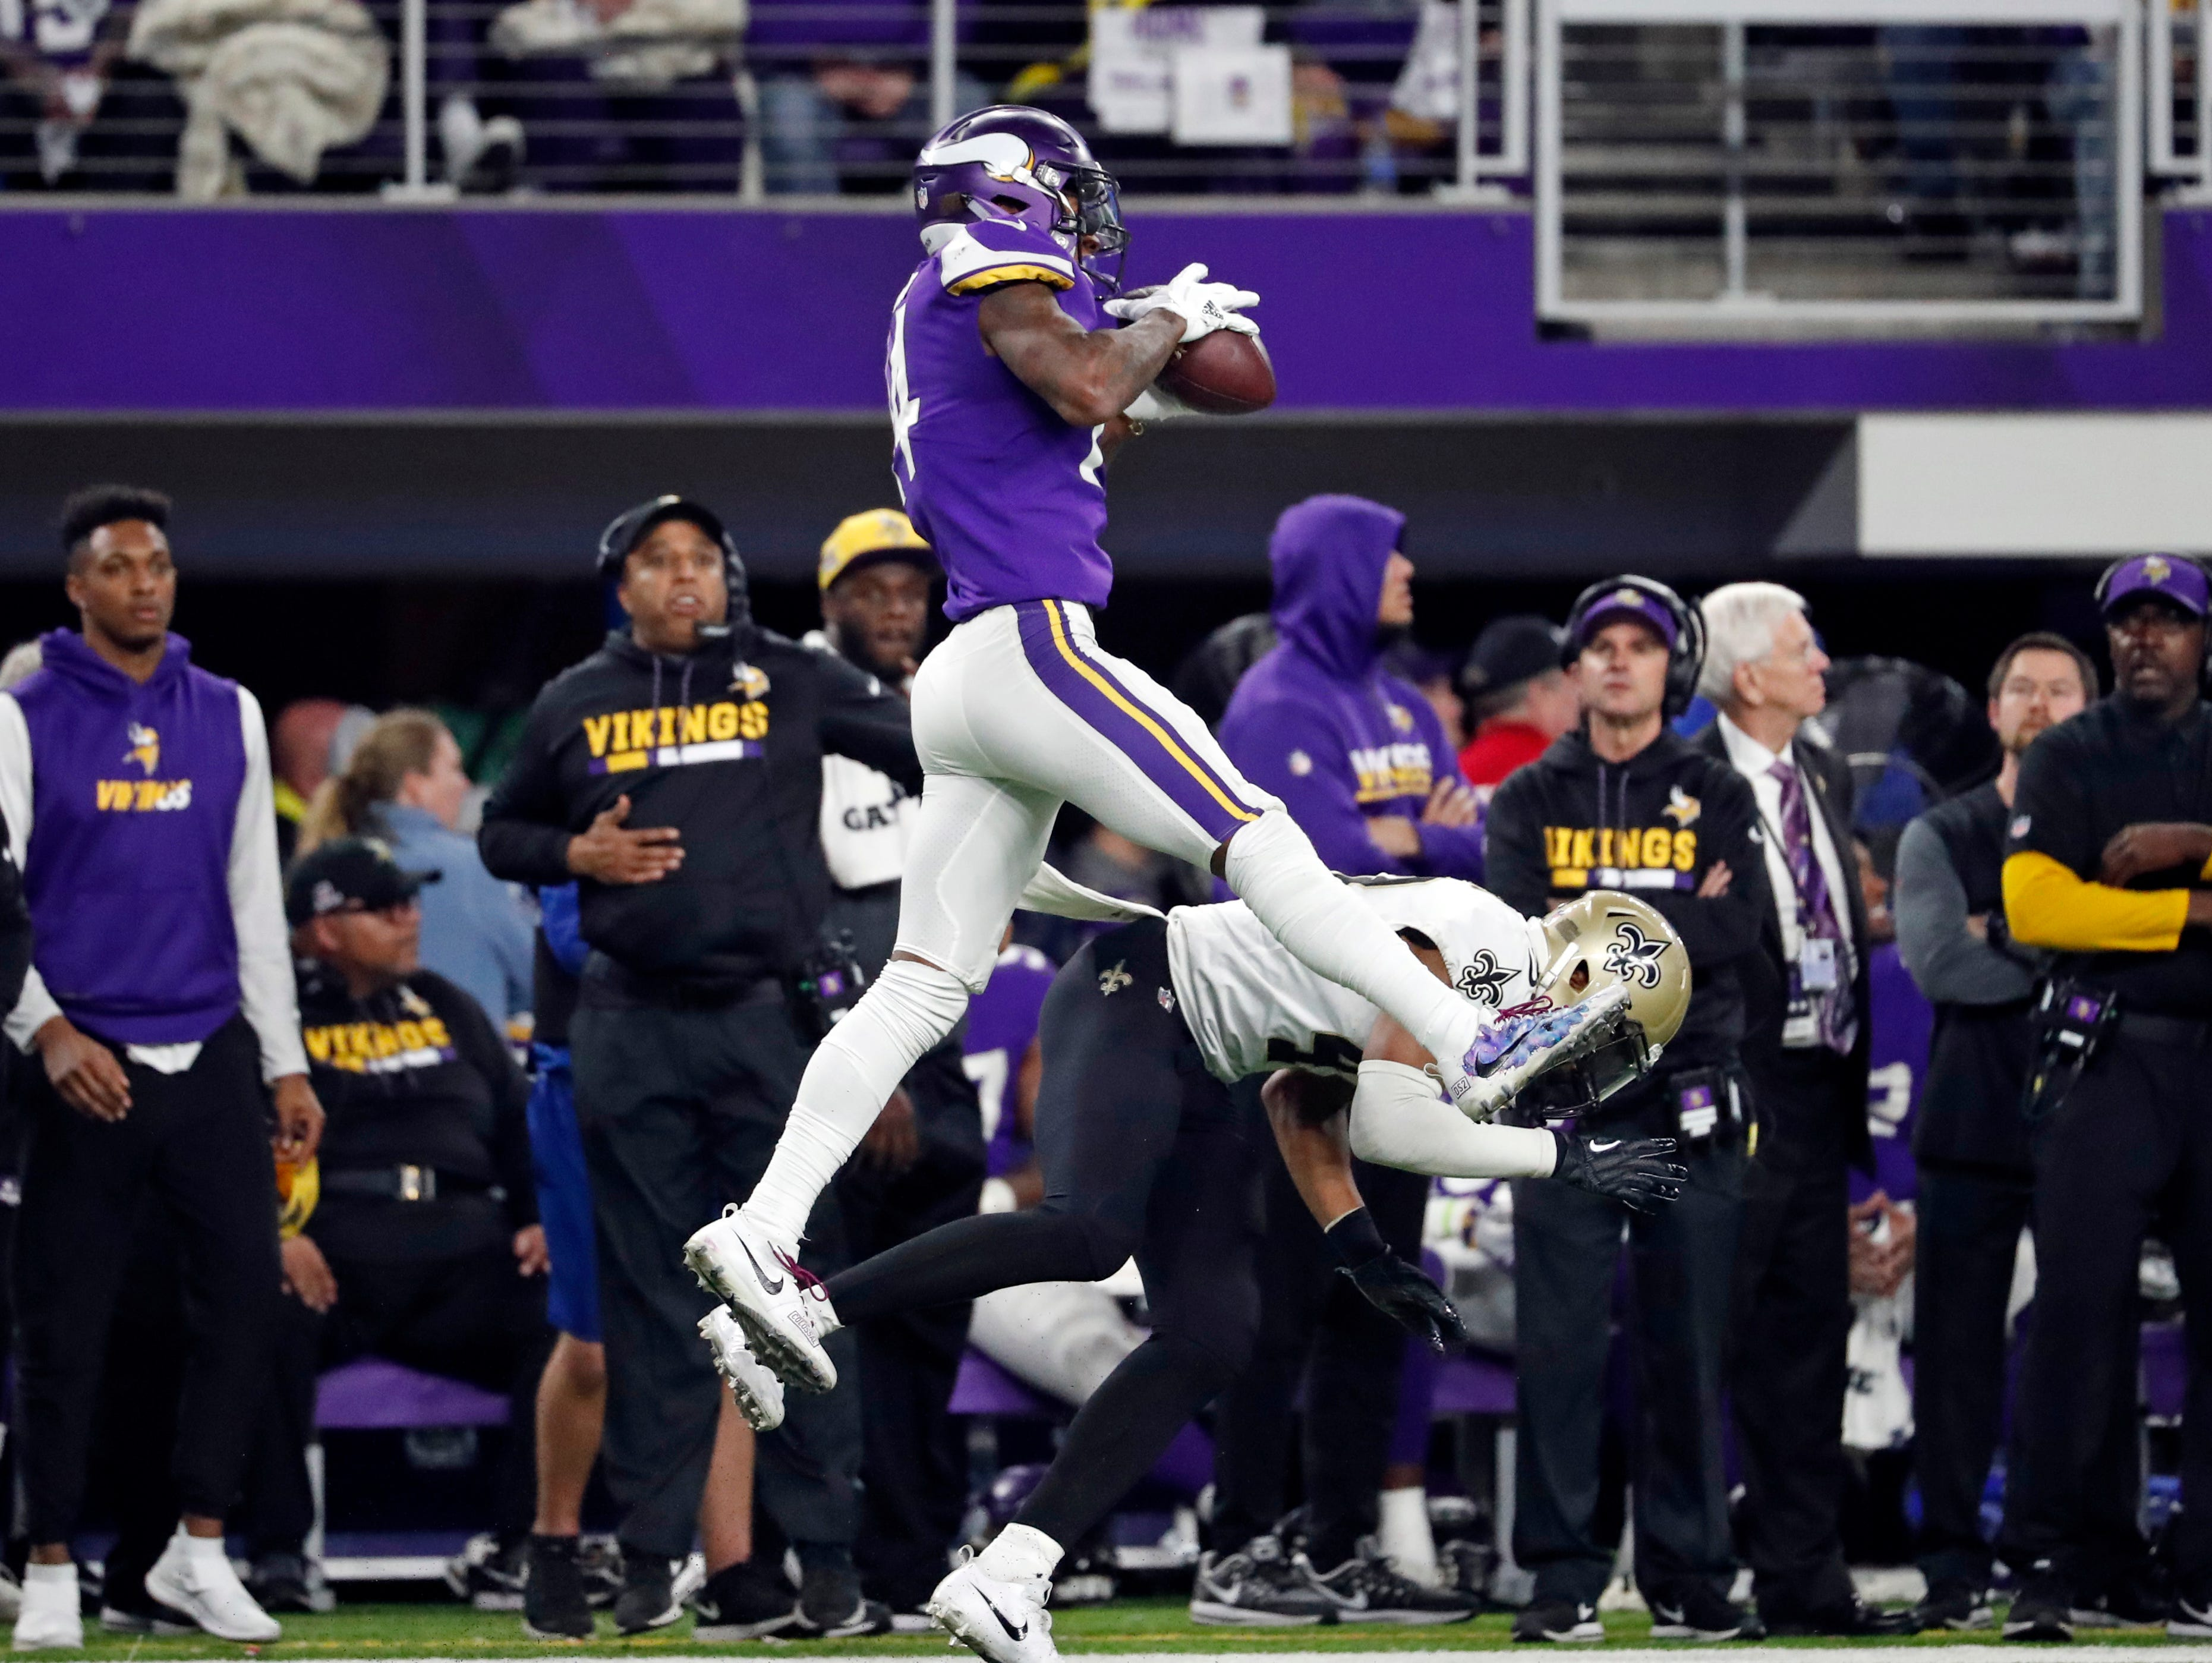 3. New Orleans Saints at Minnesota Vikings, Week 8, 8:20 p.m. Oct. 28, NBC: The Saints get a chance to exorcise the demons from last season's Minneapolis Miracle that sent the Vikings to the NFC title game.